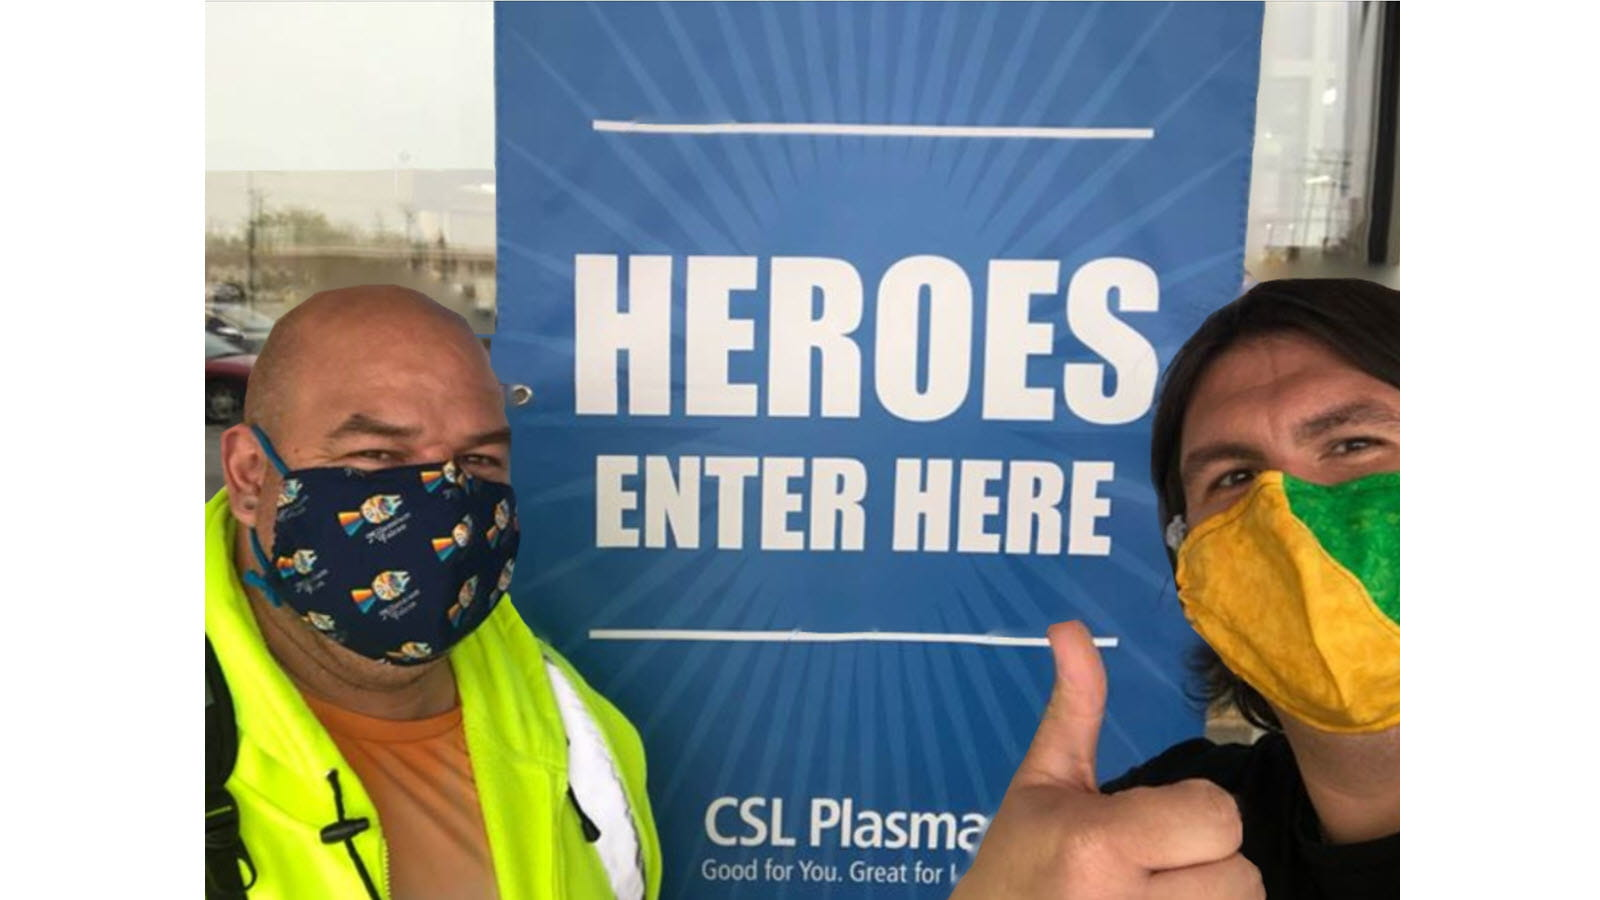 Two CSL Behring employees - Jason Tanner and Guy Redman - outside a CSL Plasma Center showing thumbs up